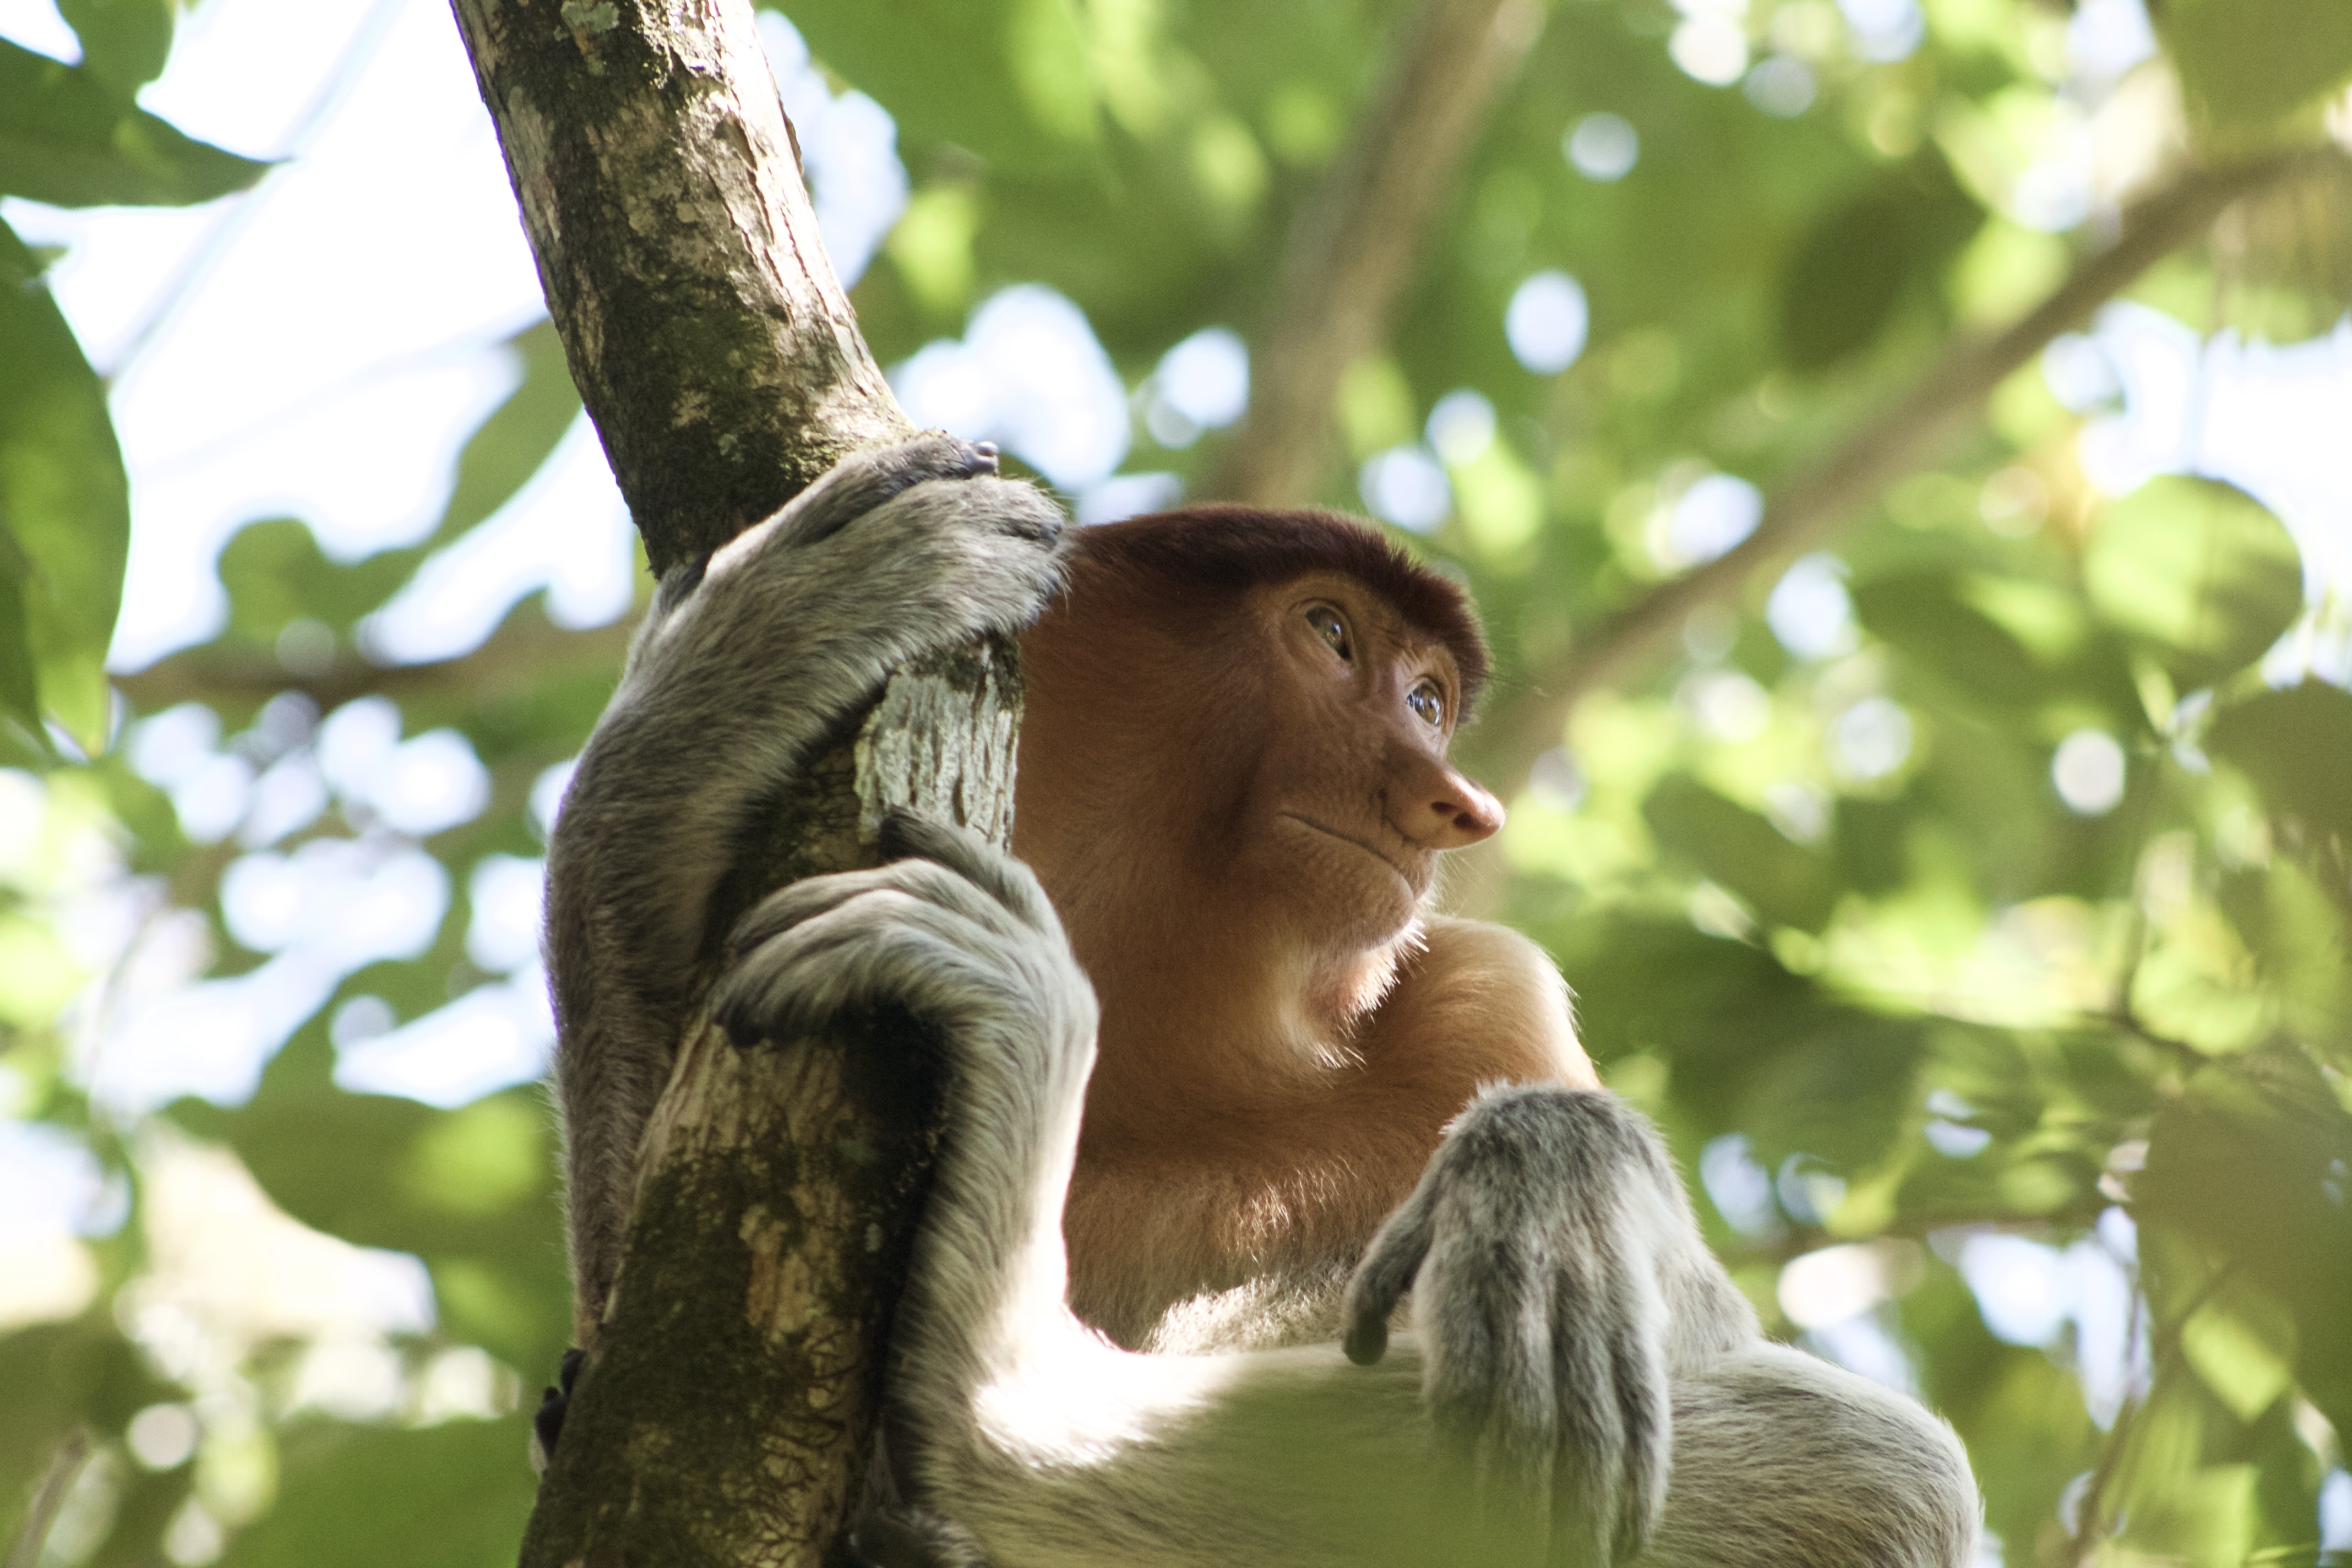 brown monkey holding in a tree branch during daytime